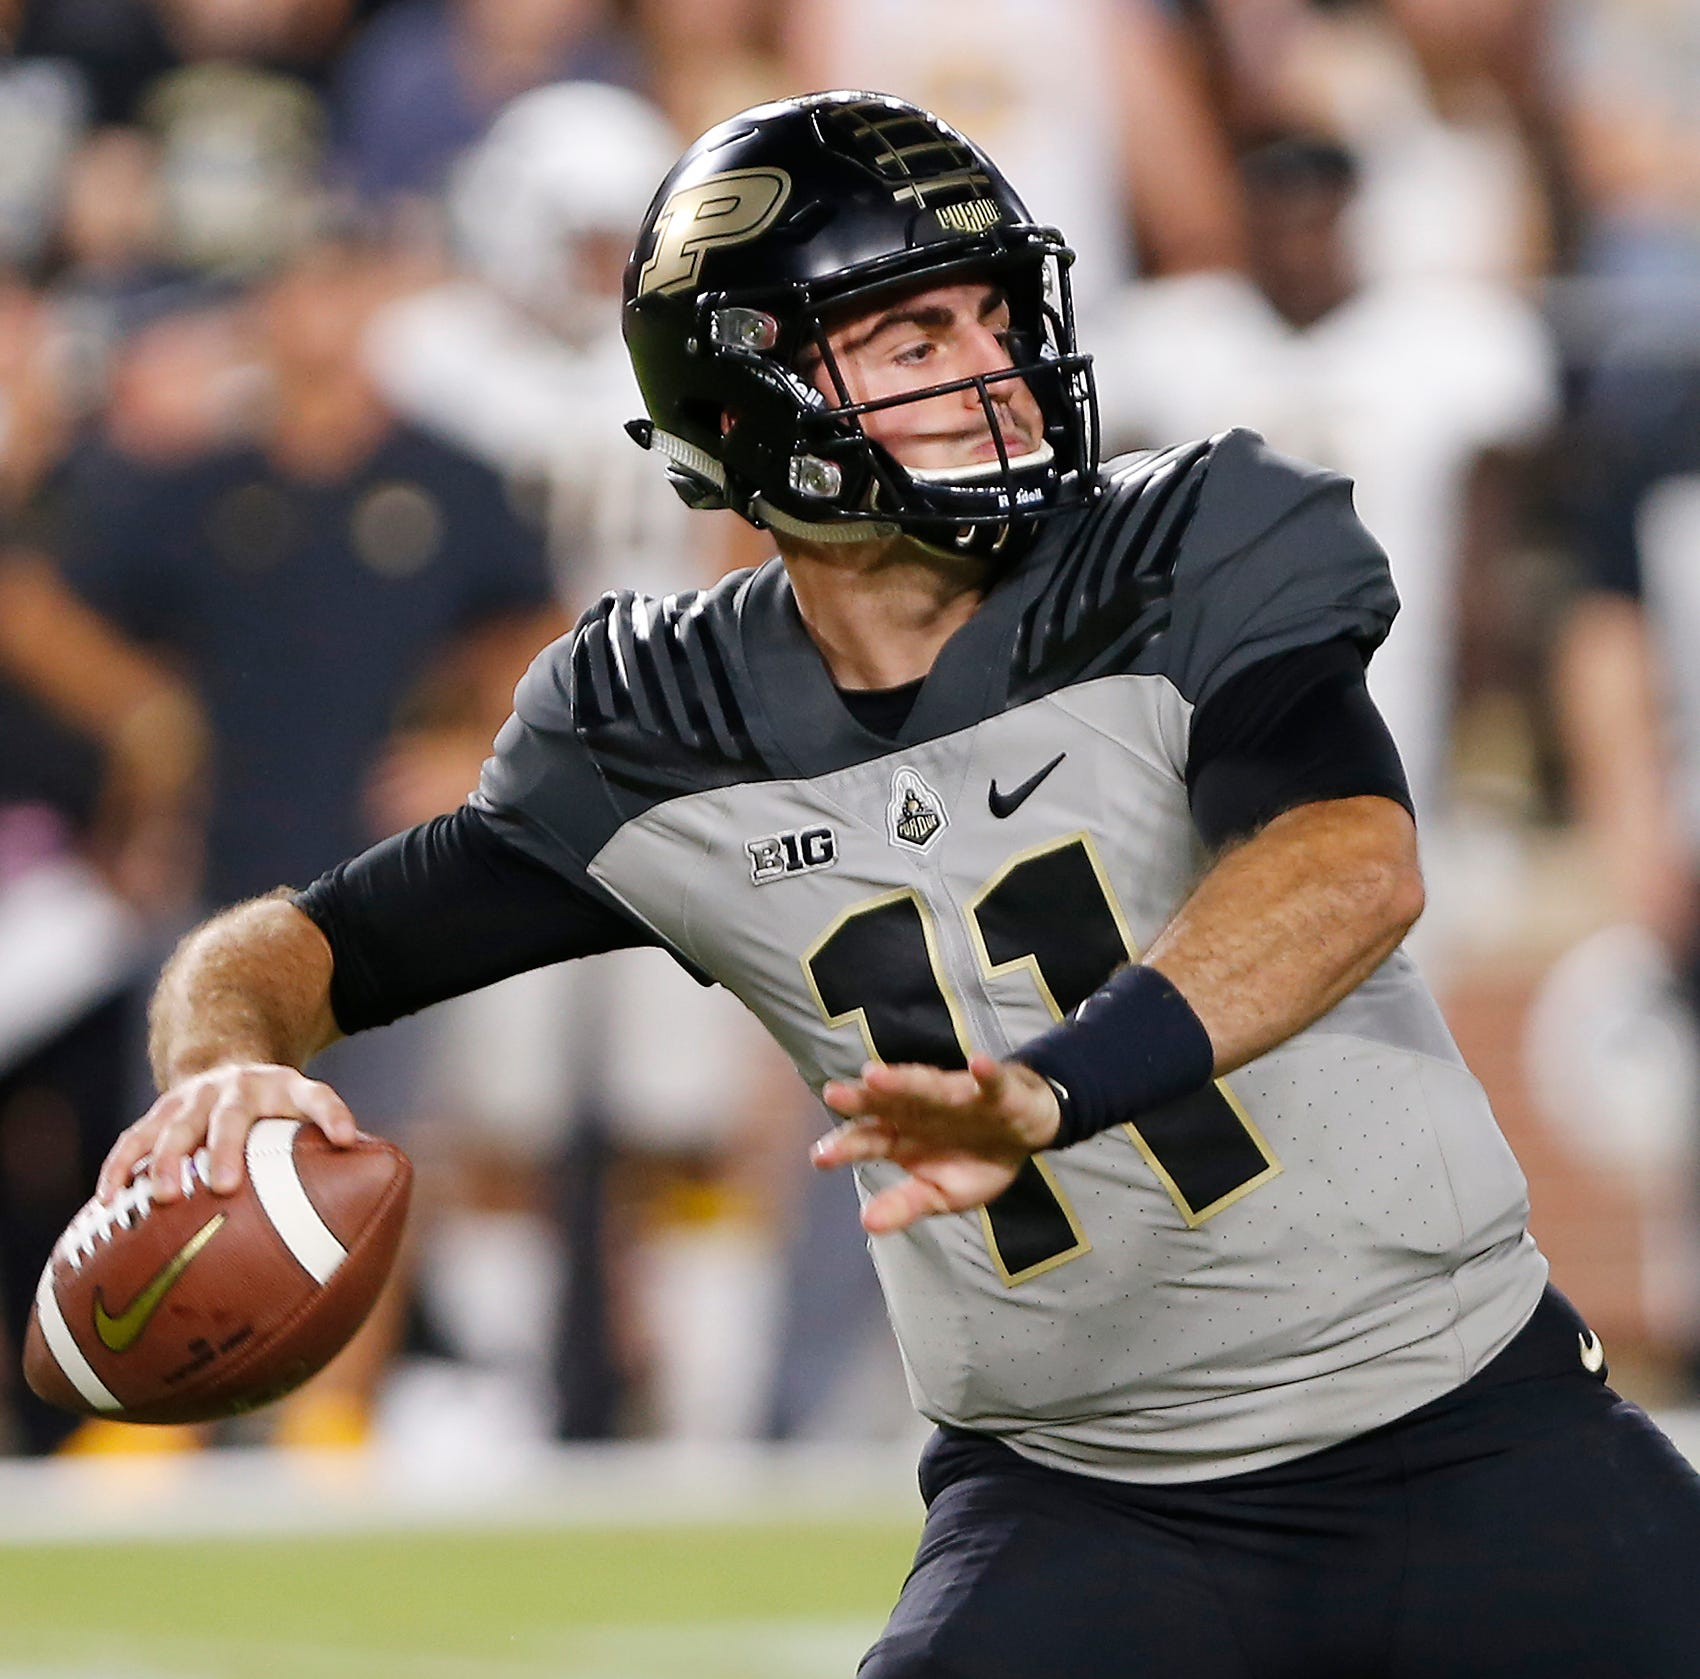 Purdue vs. Mizzou football: Did Jared Sparks score a TD? Social media has its say